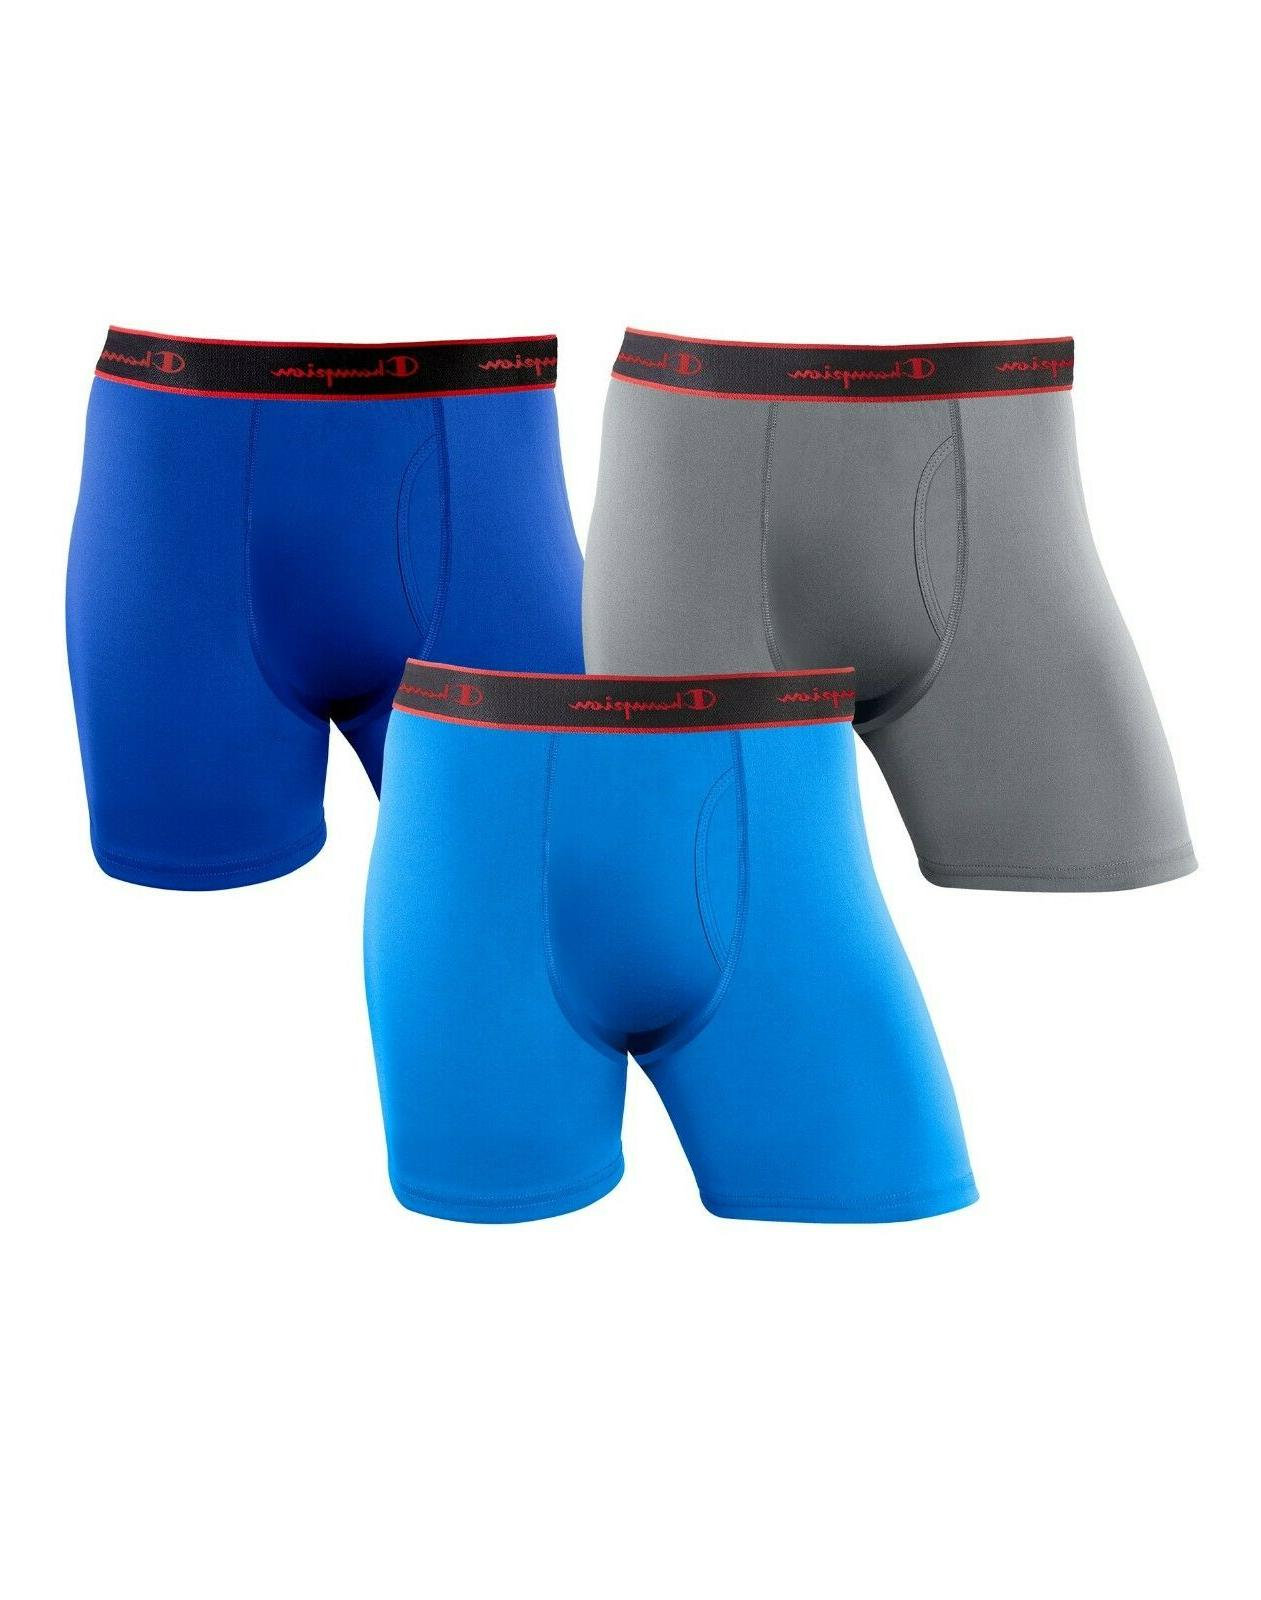 3 pack active performance moisture wicking boxer